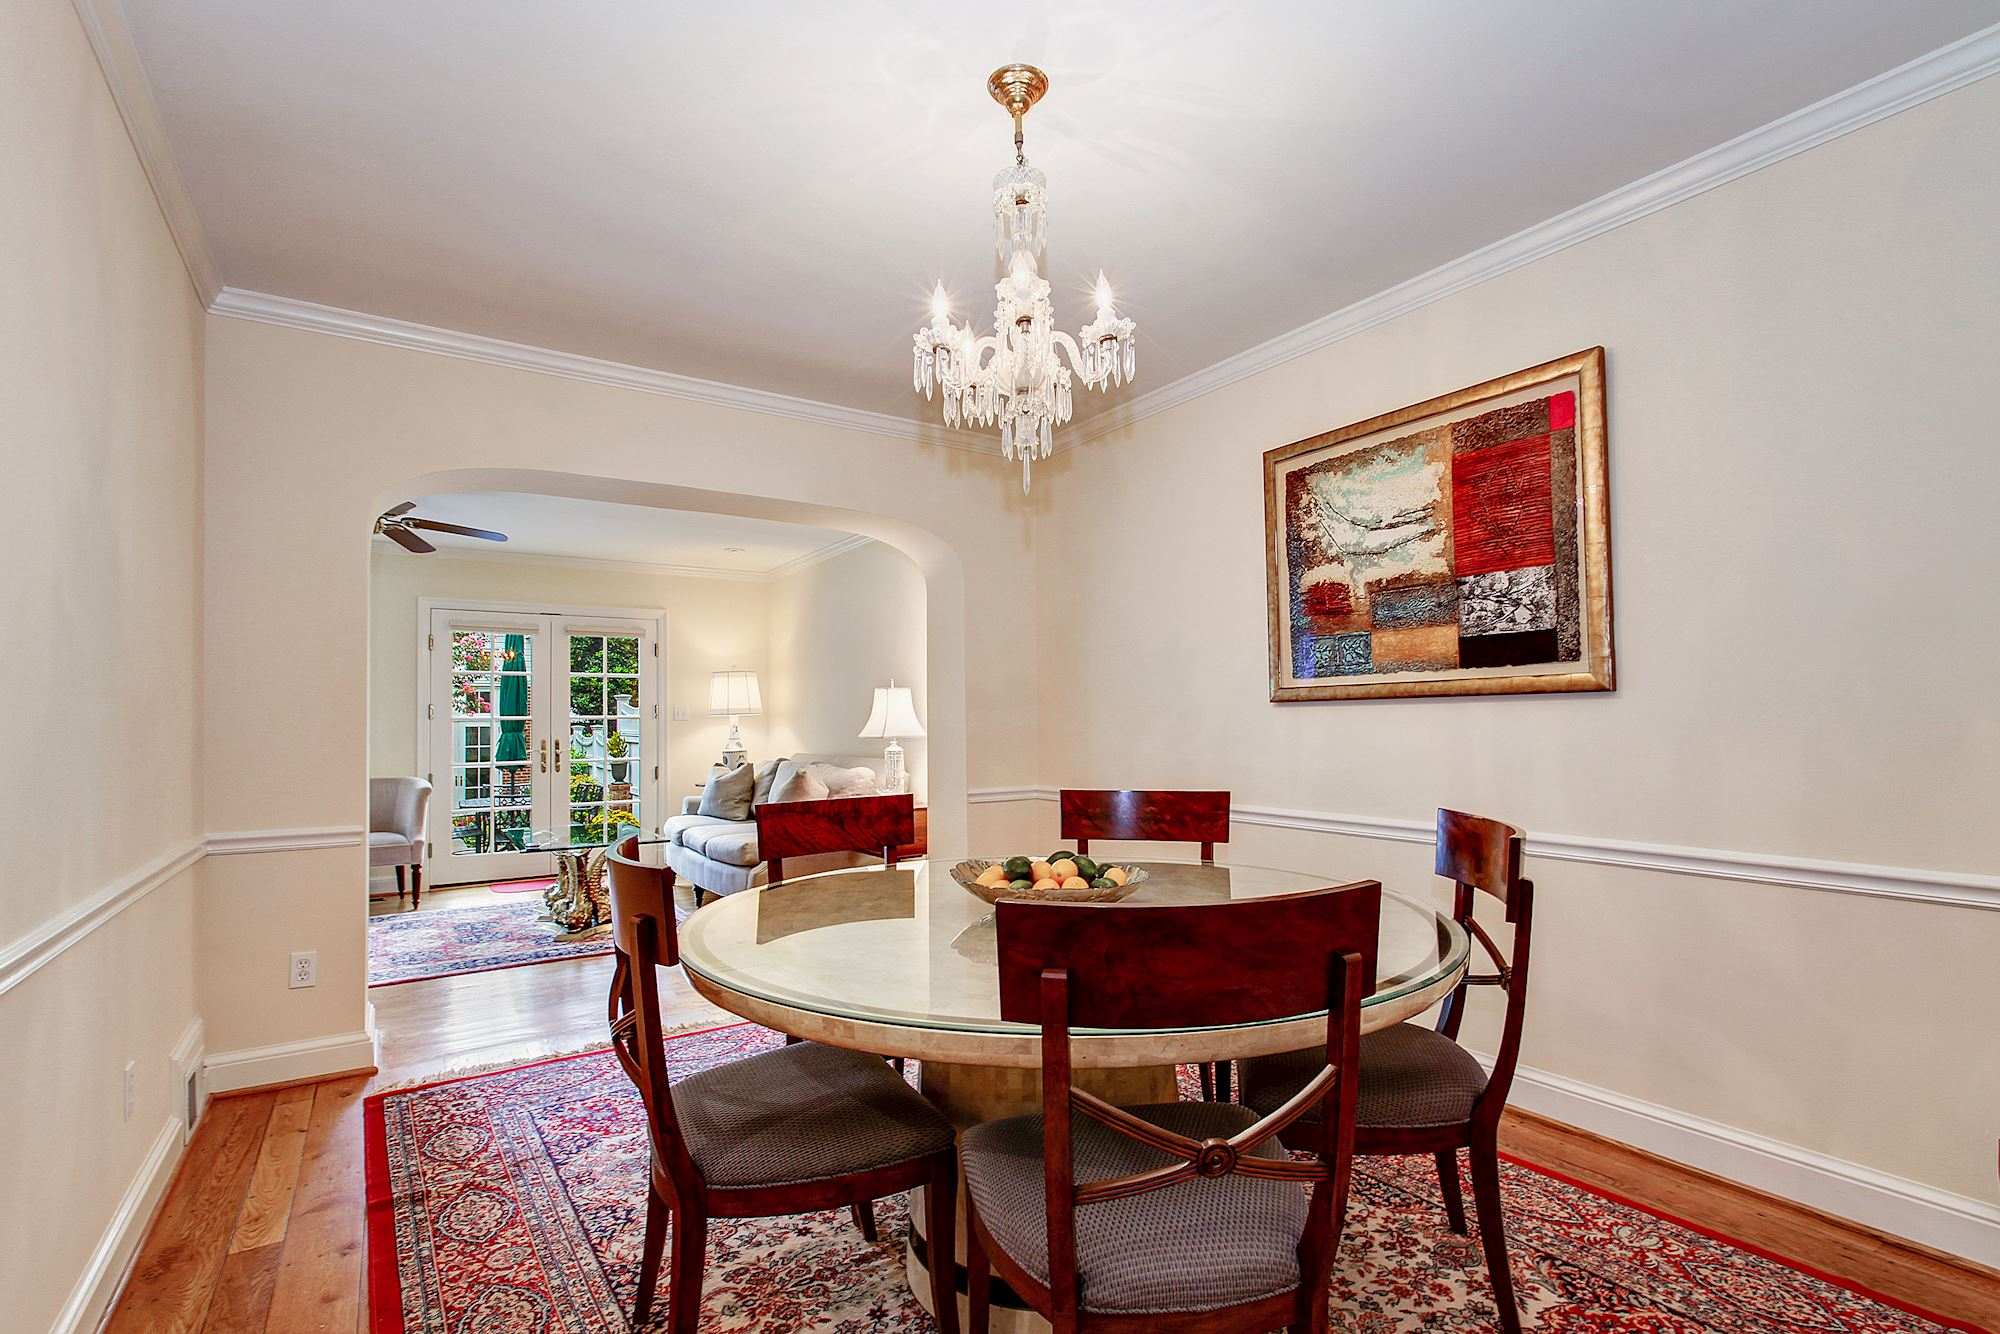 Dining Room with Orginial Chandelier